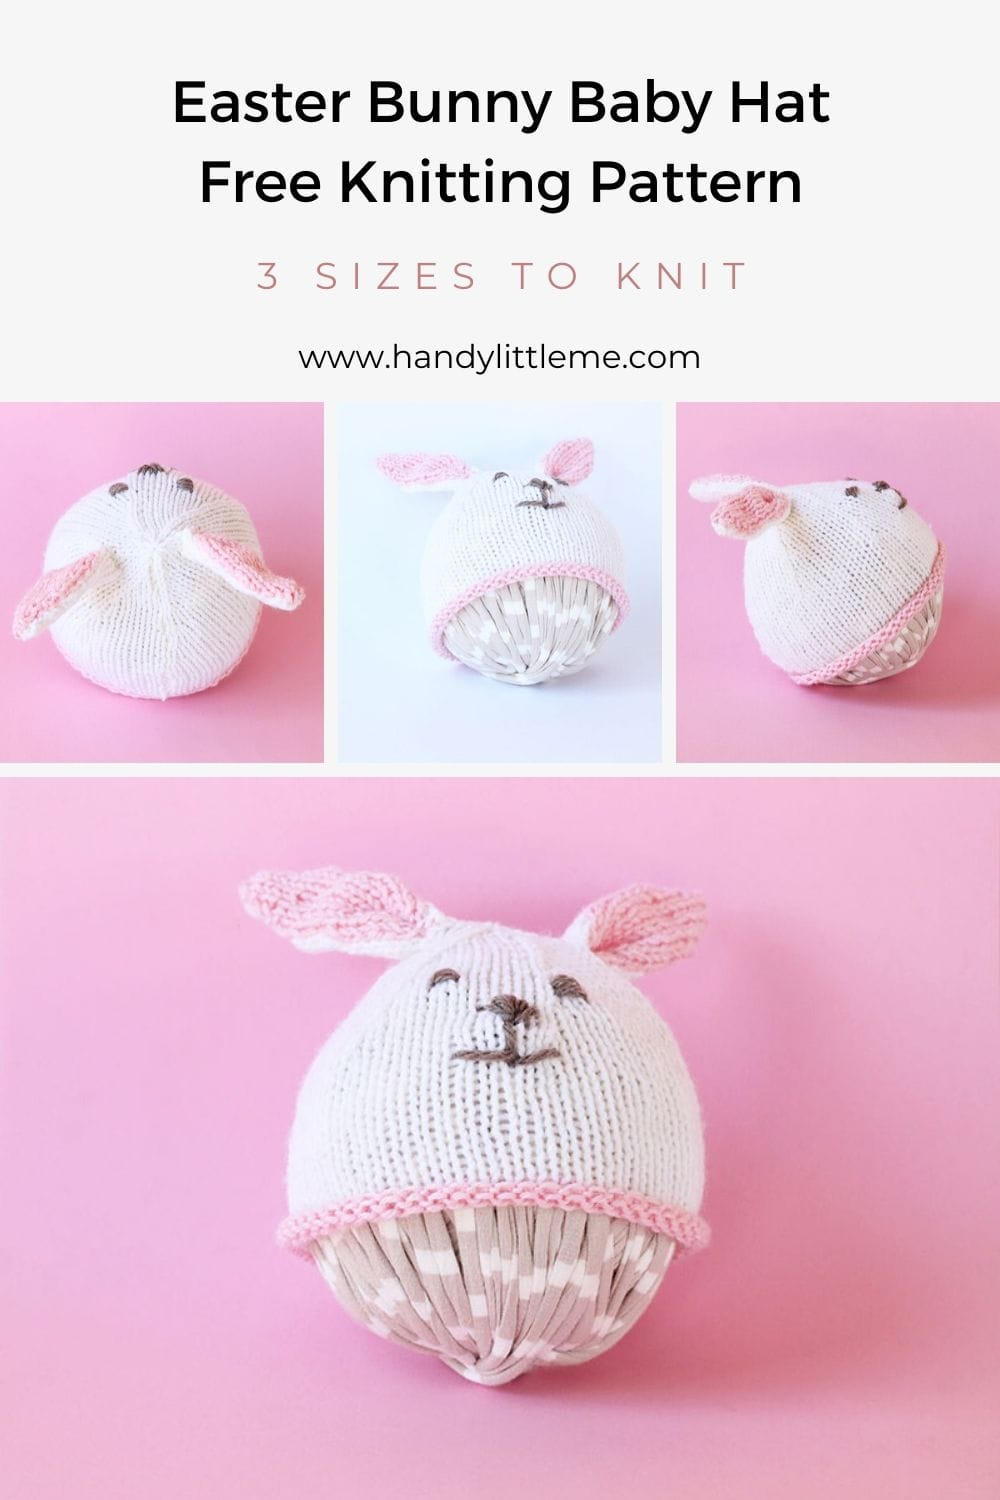 Easter bunny hat knitting pattern